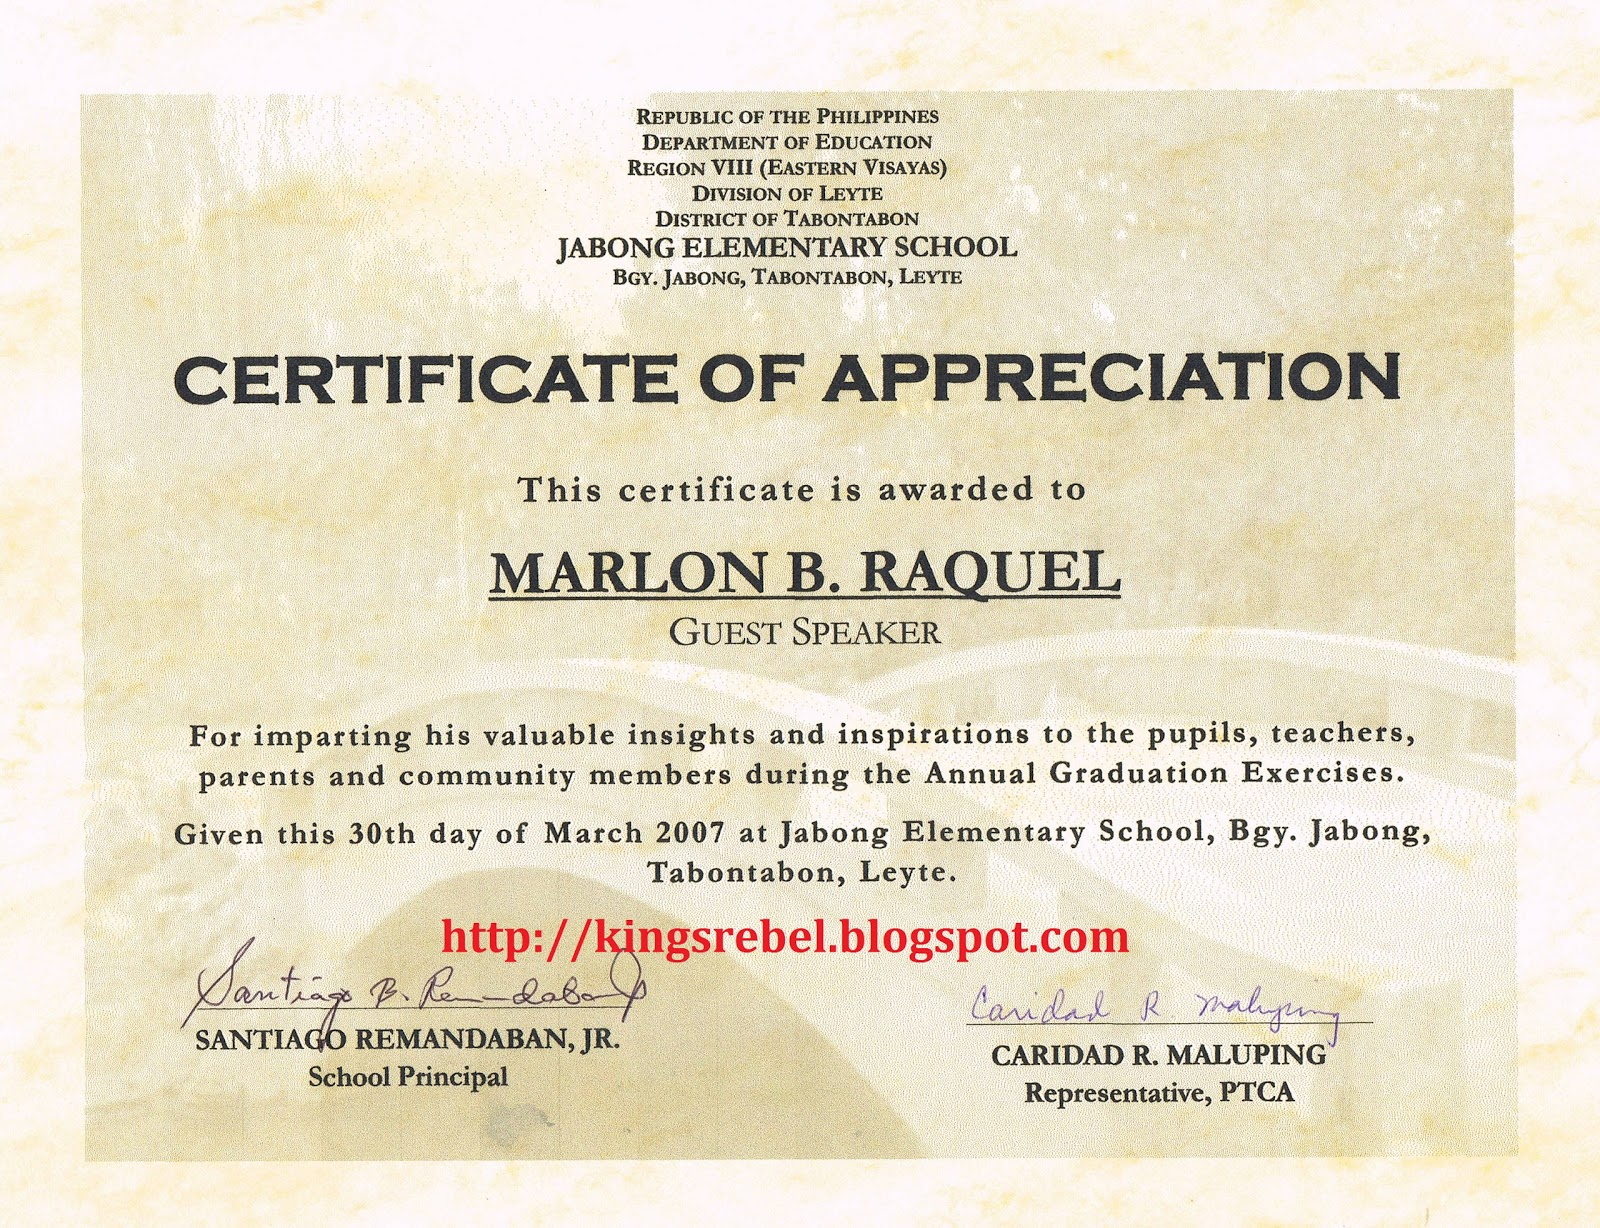 Examples of Certificate of Appreciation http://kingsrebel.blogspot.com/2011/02/example-of-certificate-of-appreciation_17.html